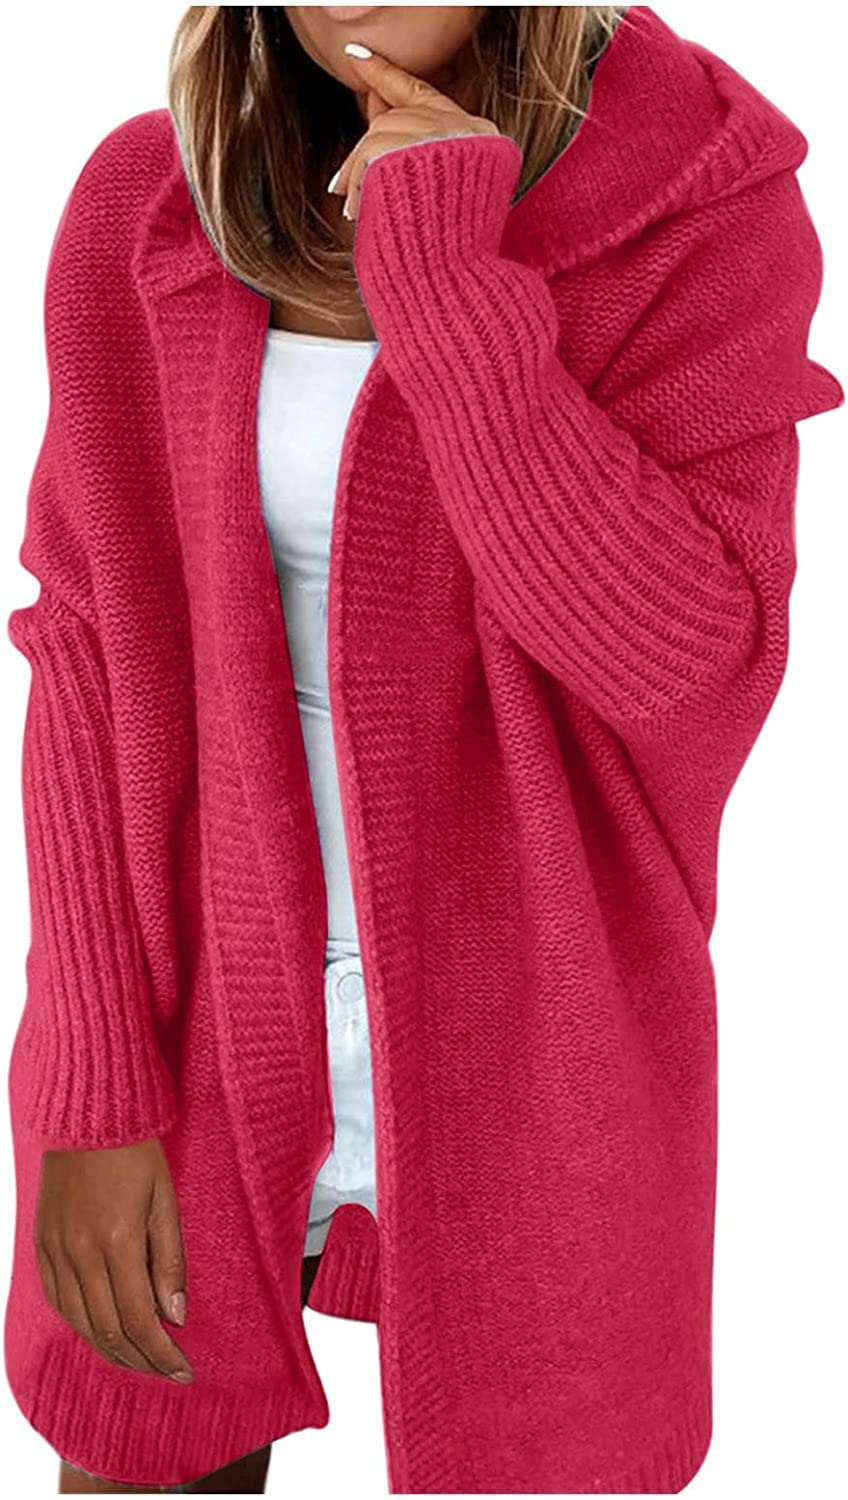 Womens Free Shipping New 2021 new Chunky Knit Long Cardigan Open Front Sleeve Sweater